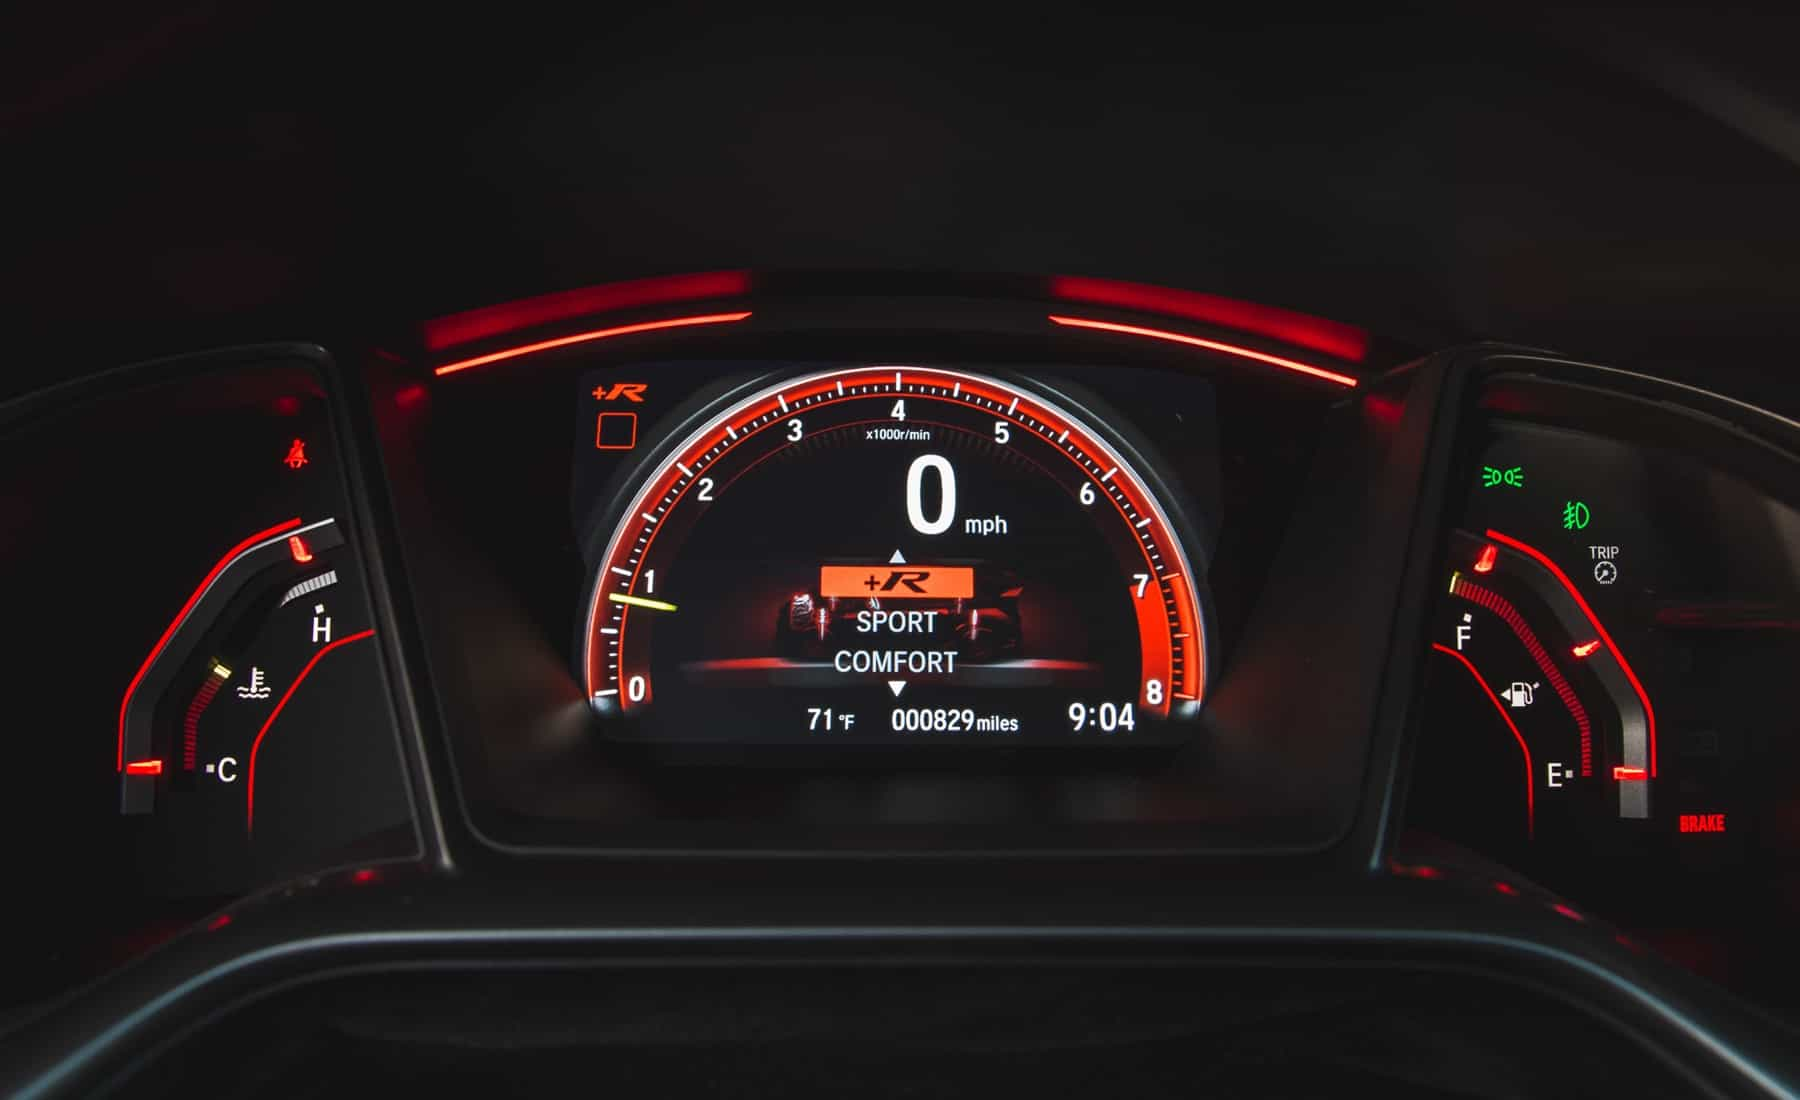 2017 Honda Civic Type R Interior View Instrument Cluster (Photo 17 of 48)